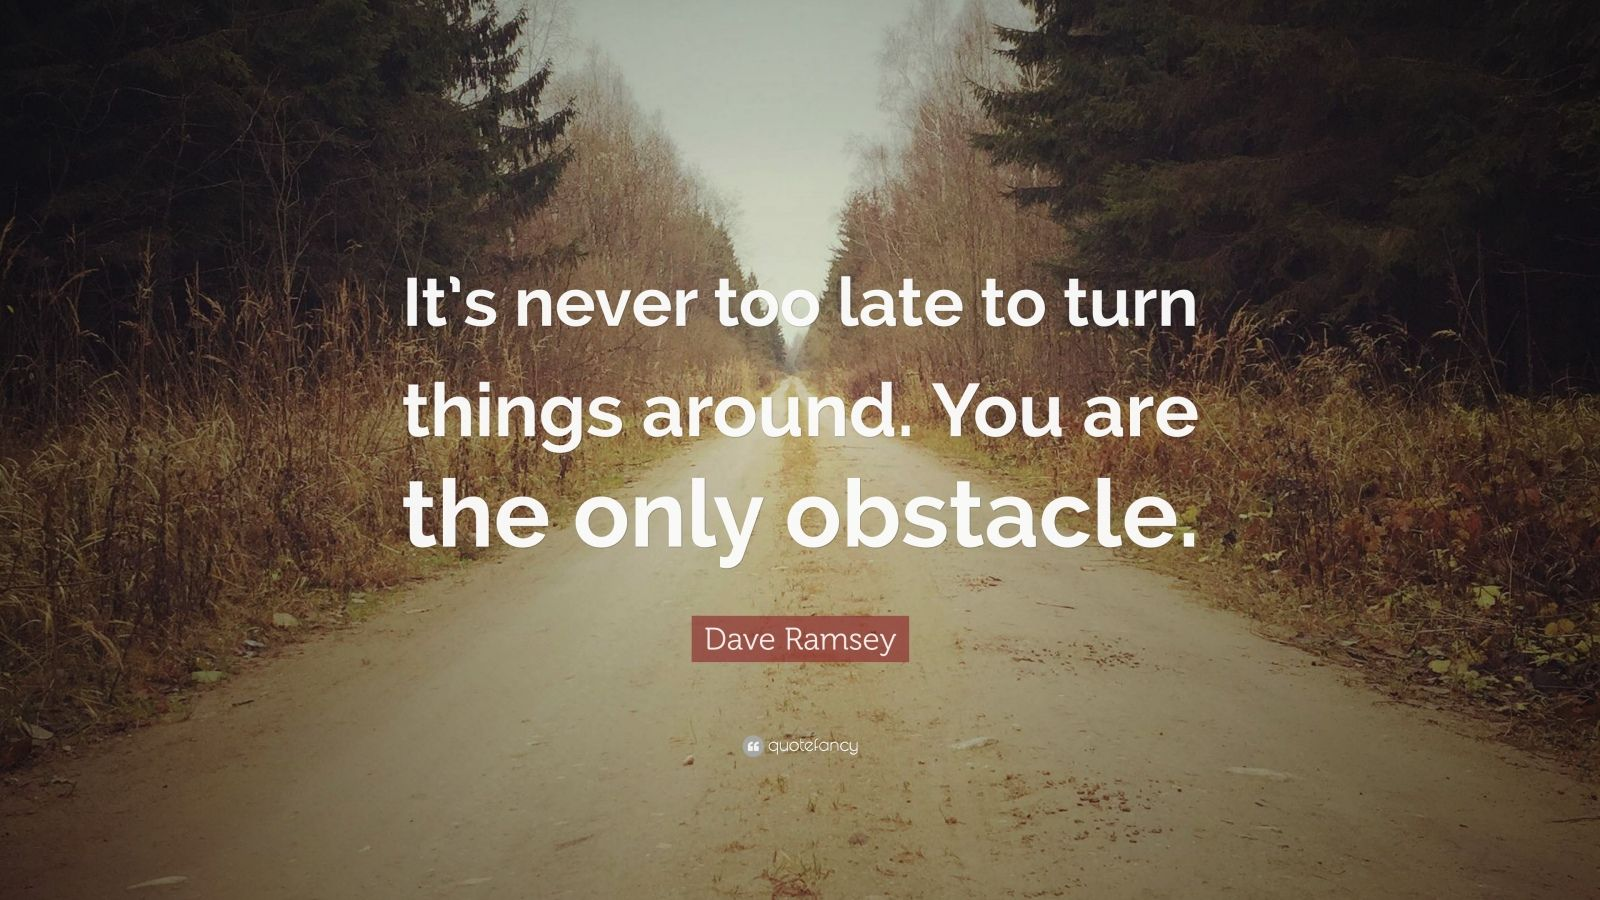 """Dave Ramsey Quote: """"It's never too late to turn things around. You are the only obstacle."""""""